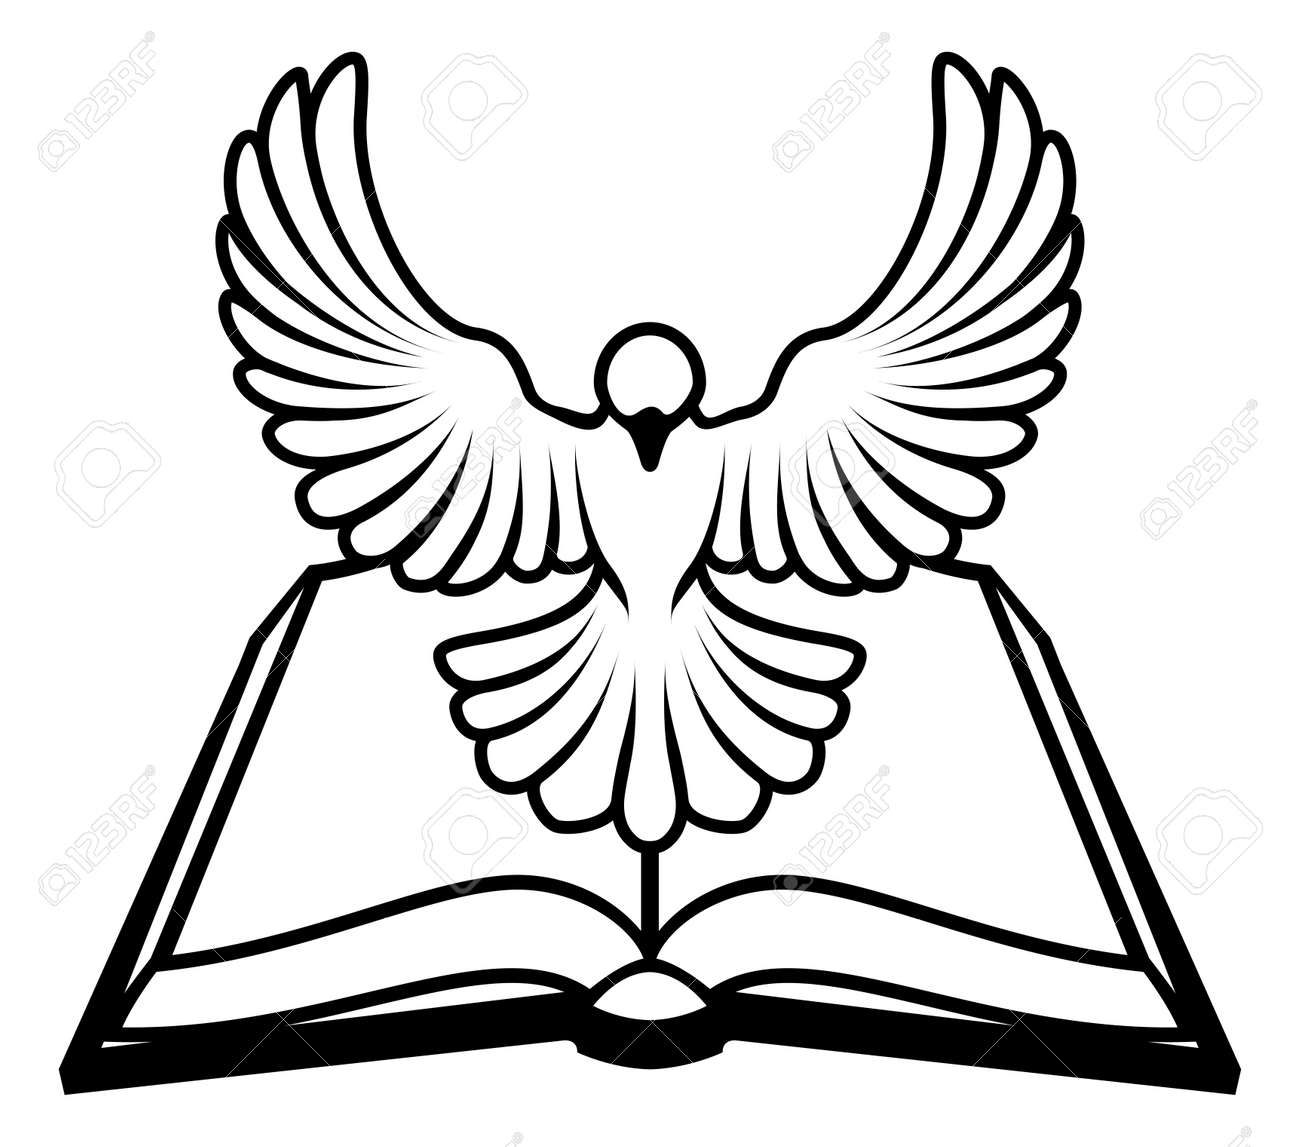 A christian bible dove concept with a white dove representing a christian bible dove concept with a white dove representing the holy spirit flying out biocorpaavc